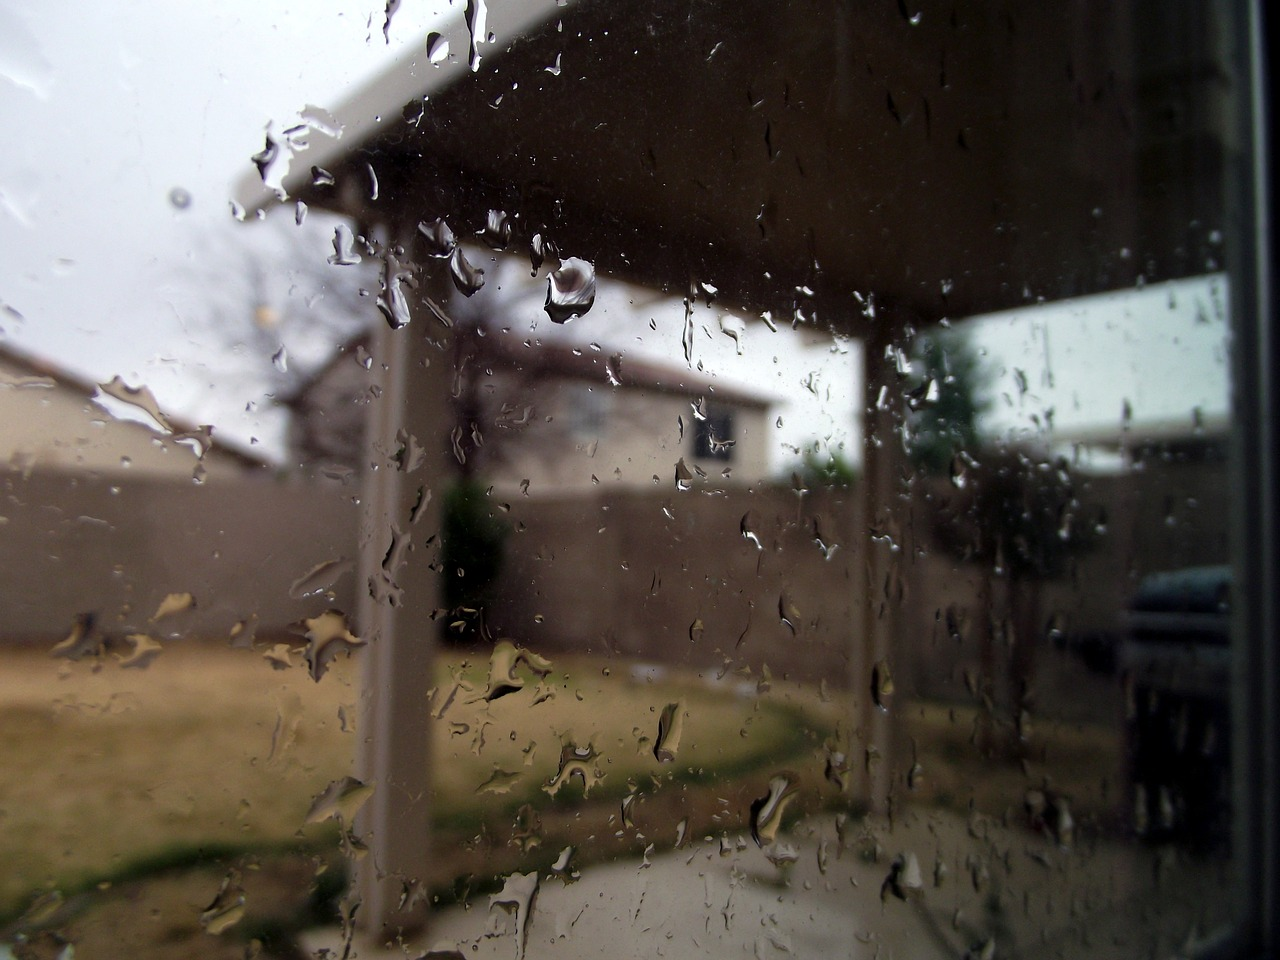 Coping with Condensation